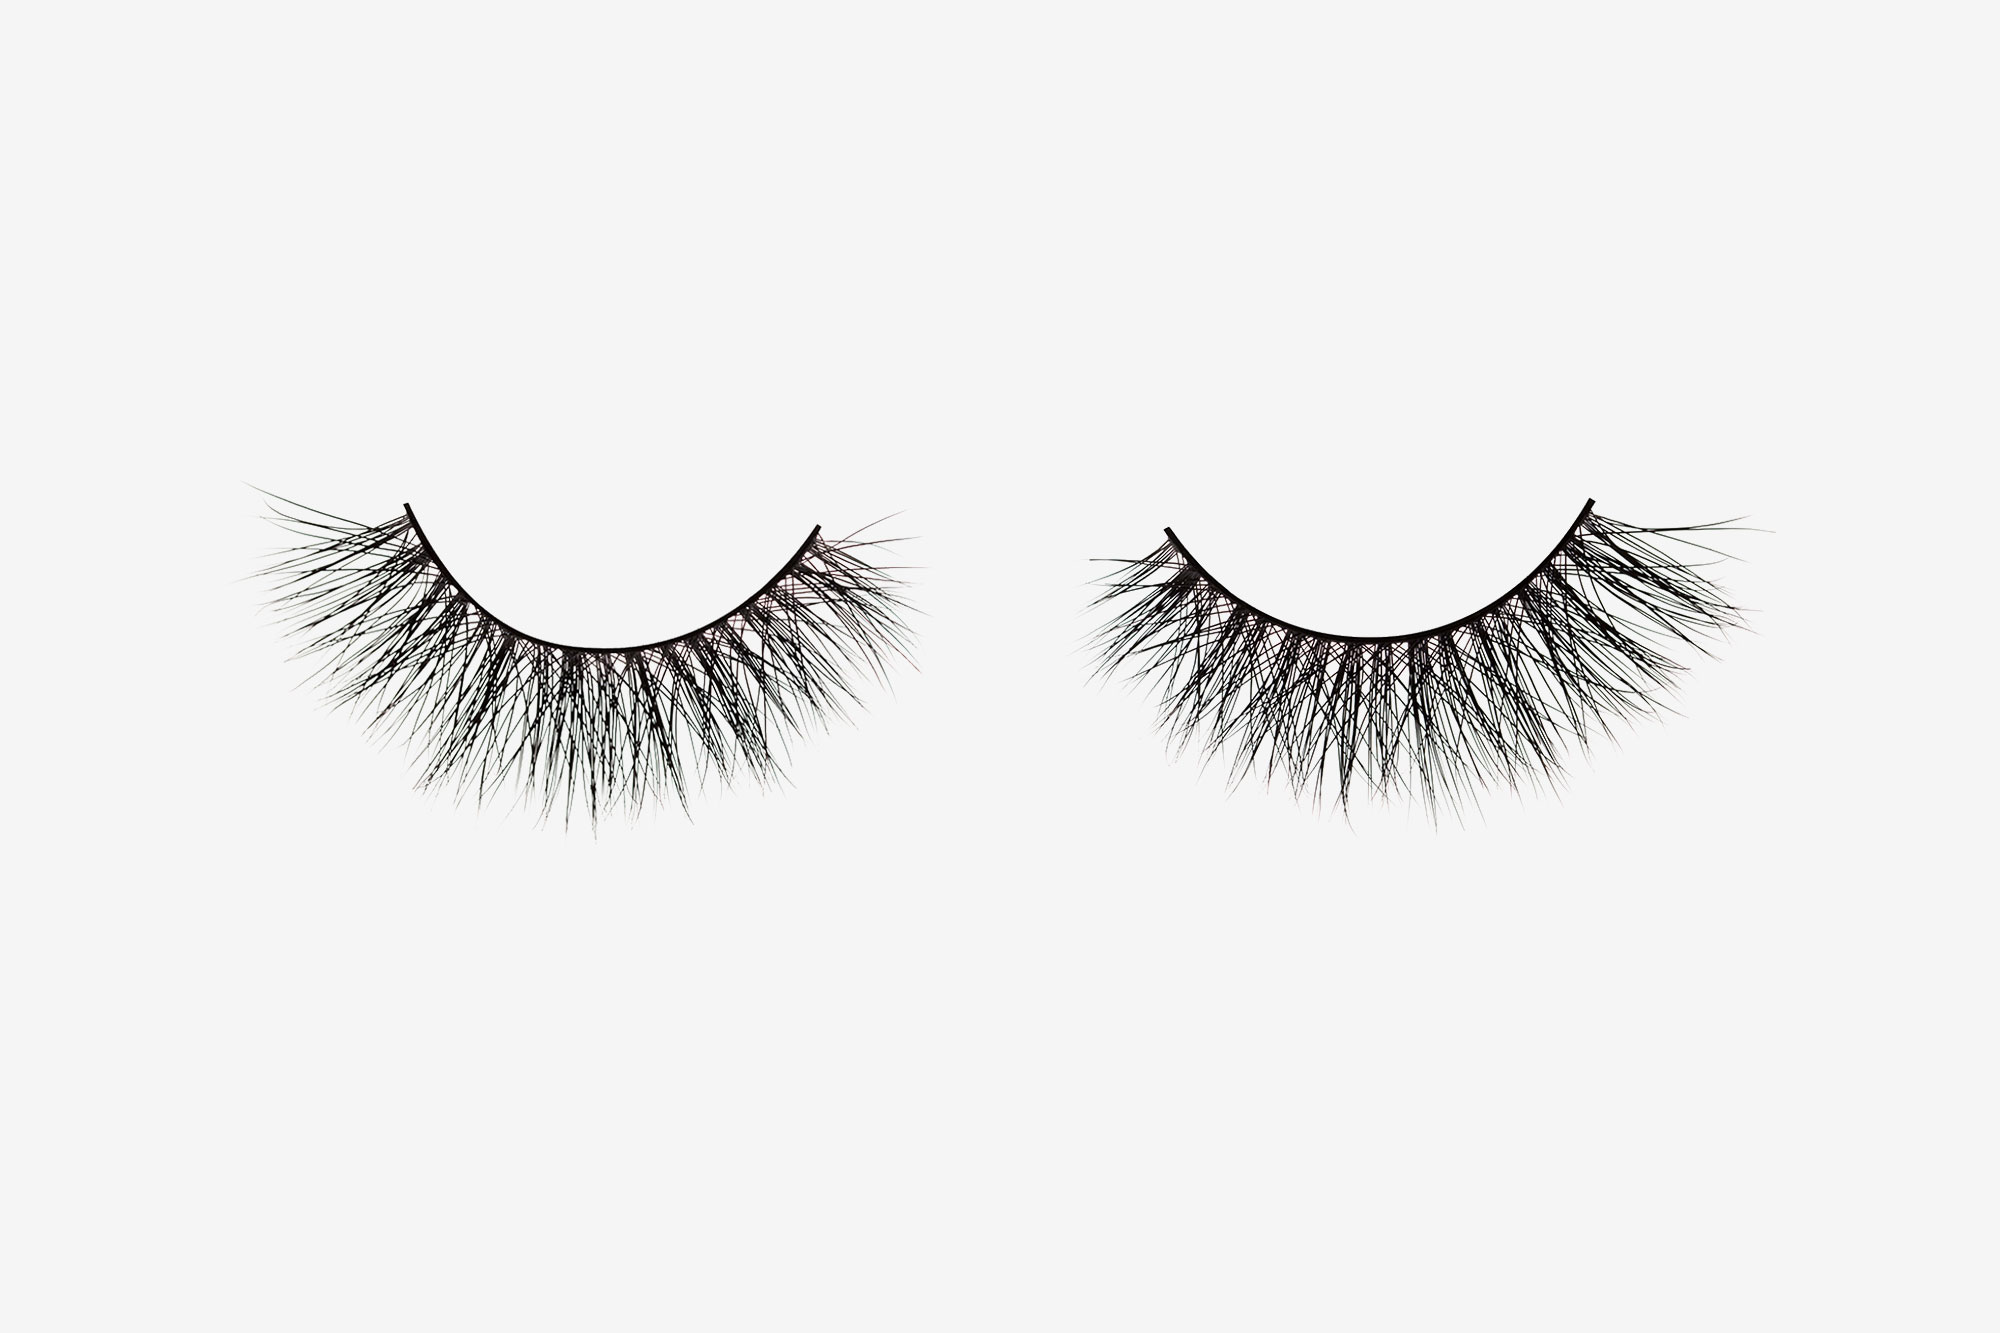 Olivia Mink Lashes, two false eyelashes side by side on grey background